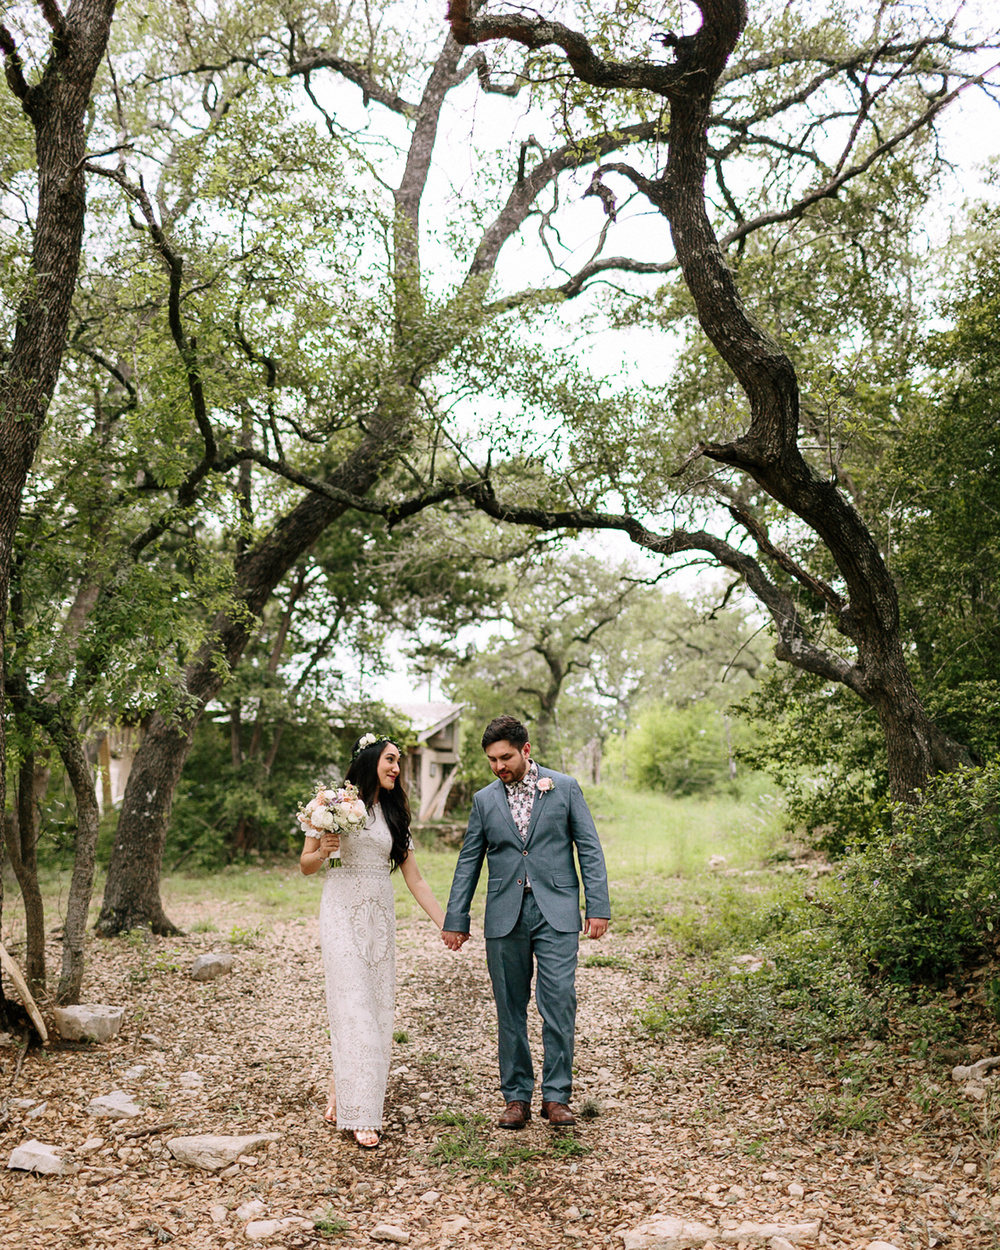 324-wimberley-texas-intimate-backyard-wedding.jpg